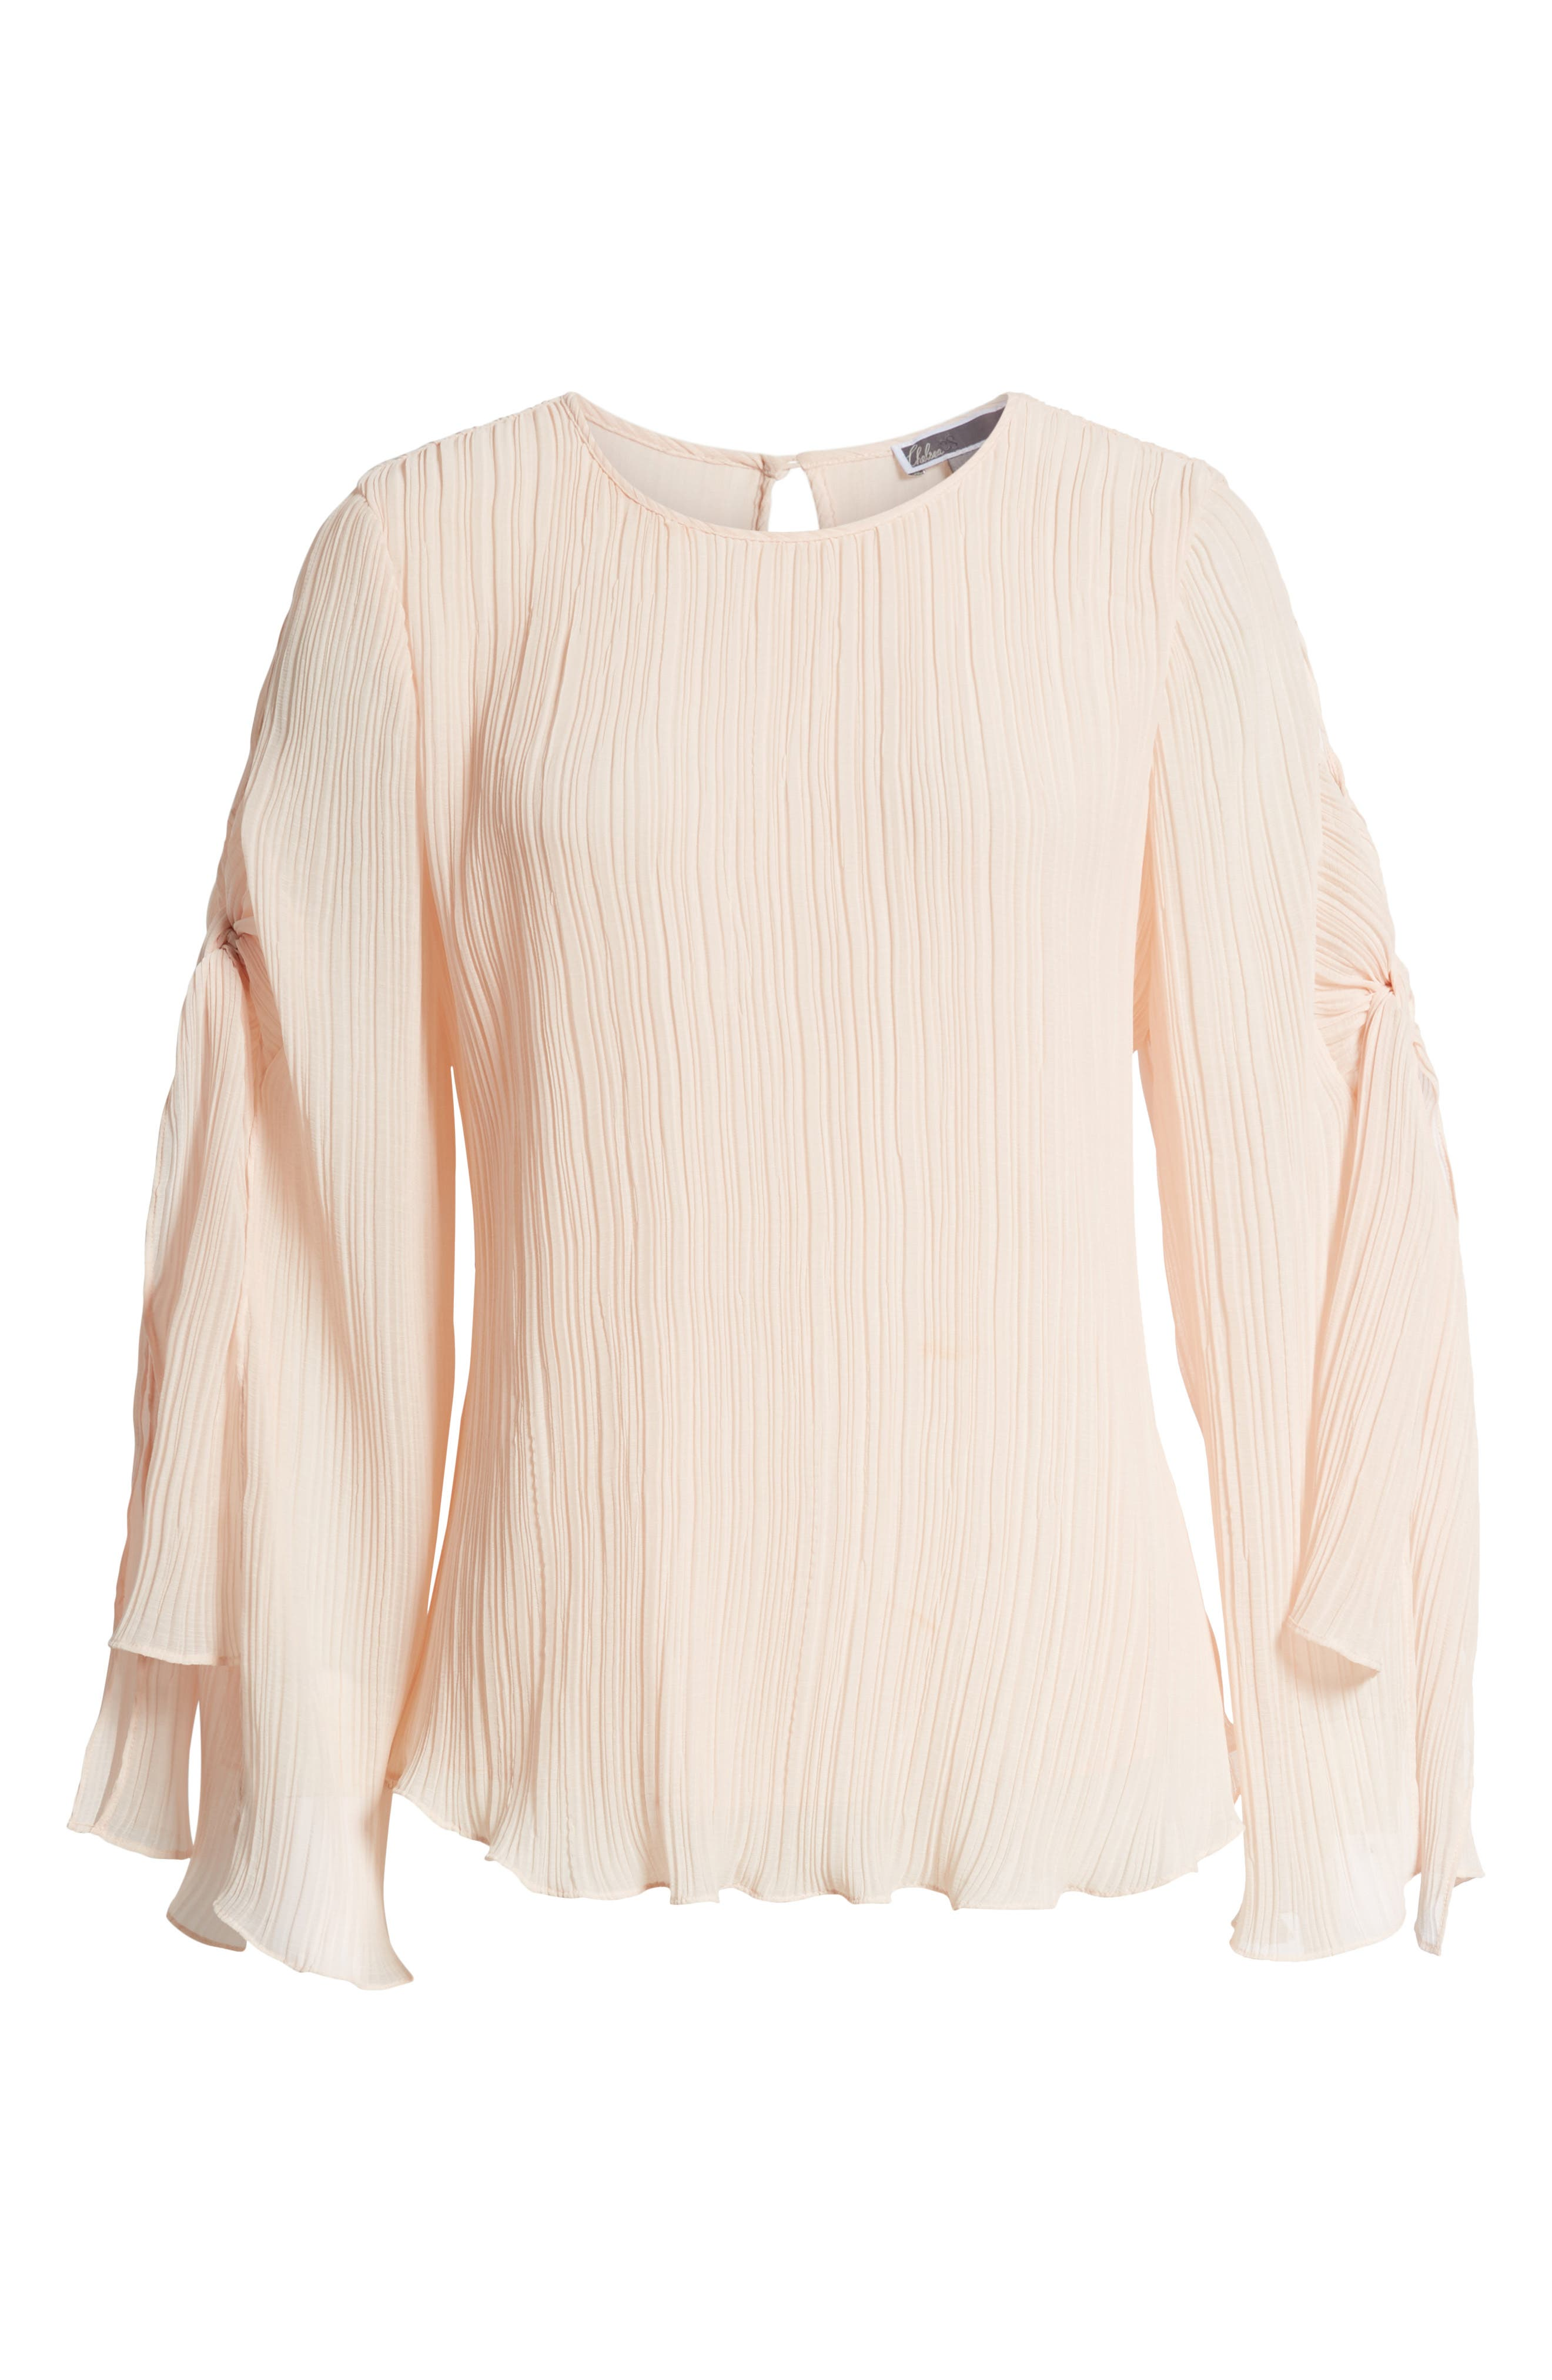 Pleated Tie Sleeve Top,                             Alternate thumbnail 7, color,                             Pink Blush